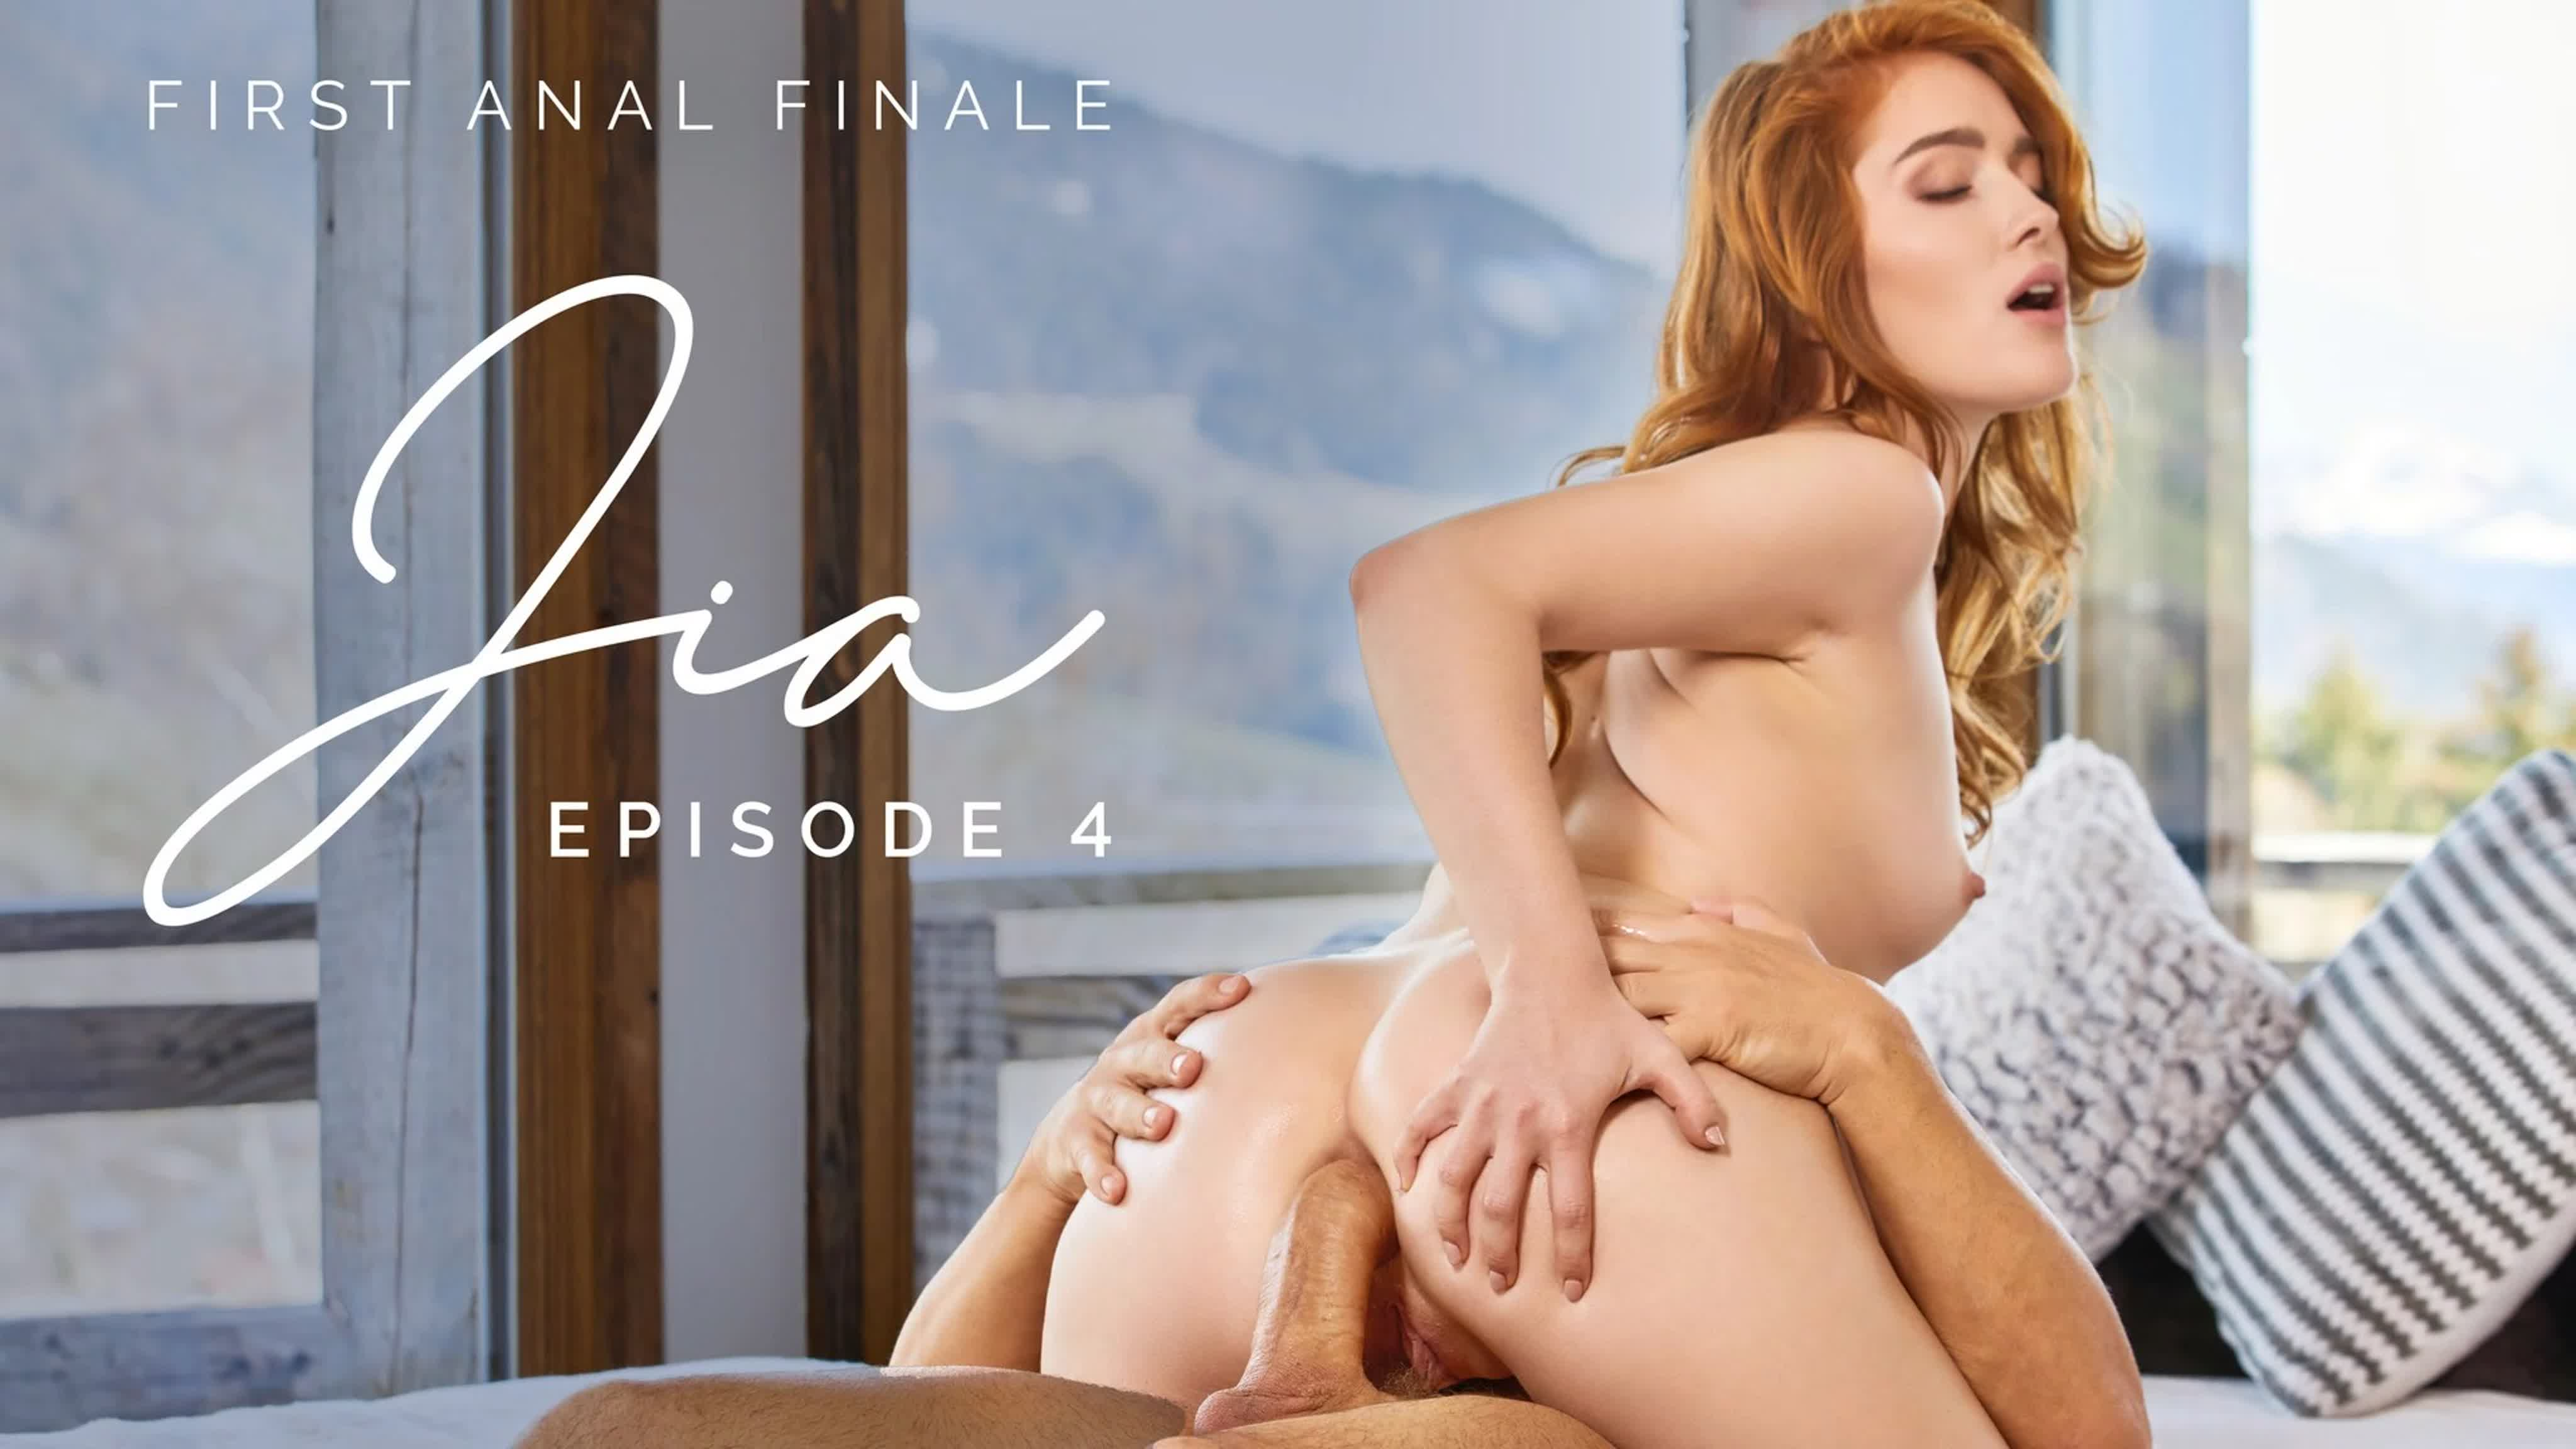 Jia Lissa - Jia: Episode 4 [Tushy] Anal Sex Redhead Erotica Art Doggystyle Reverse Cowgirl Missionary Facial Brazzers 1080 Порно